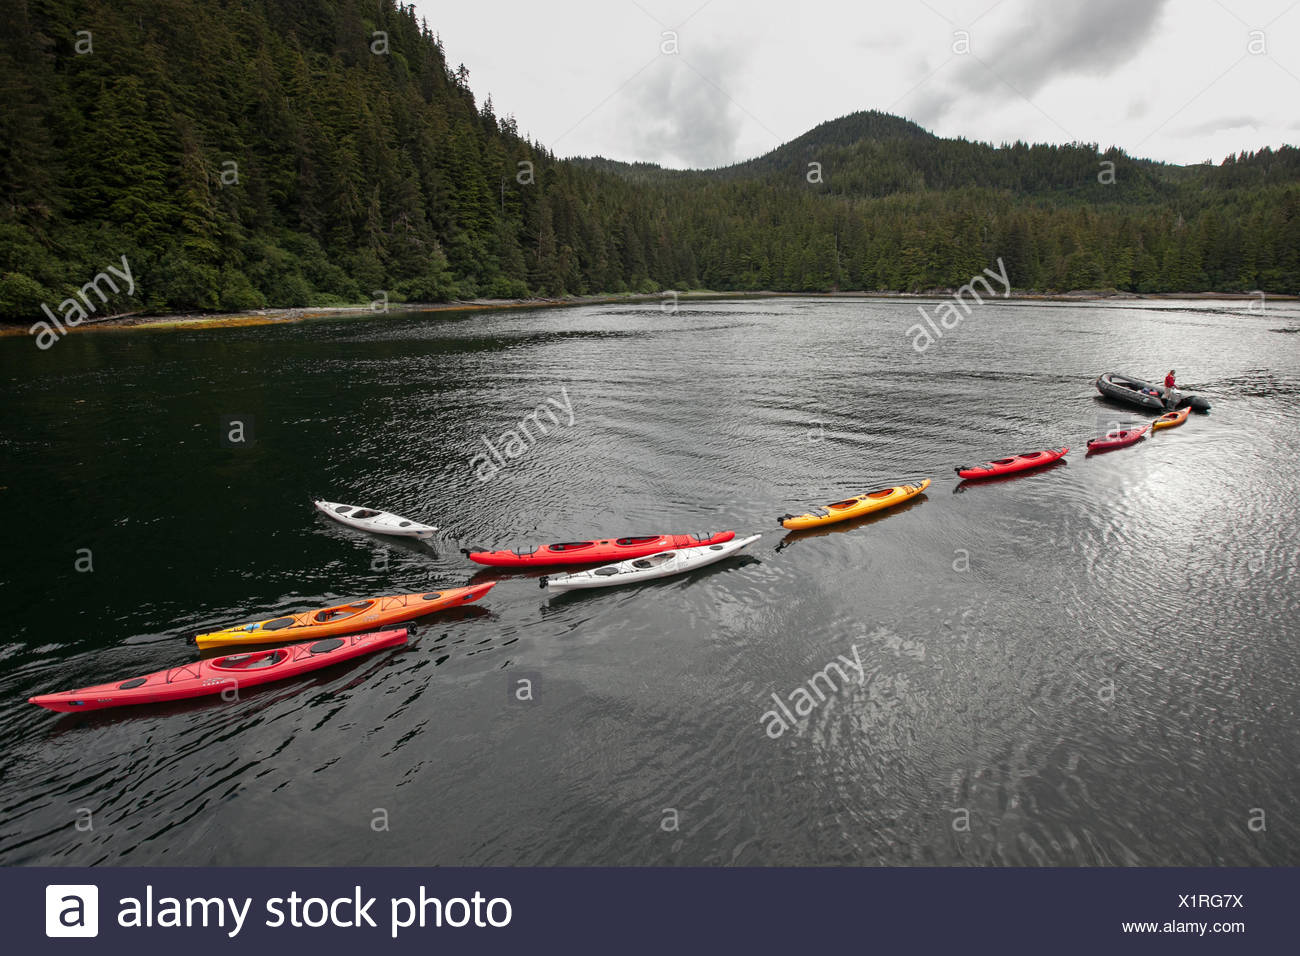 A passenger in a Zodiak boat pulls a long line of colorful kayaks through the water. - Stock Image